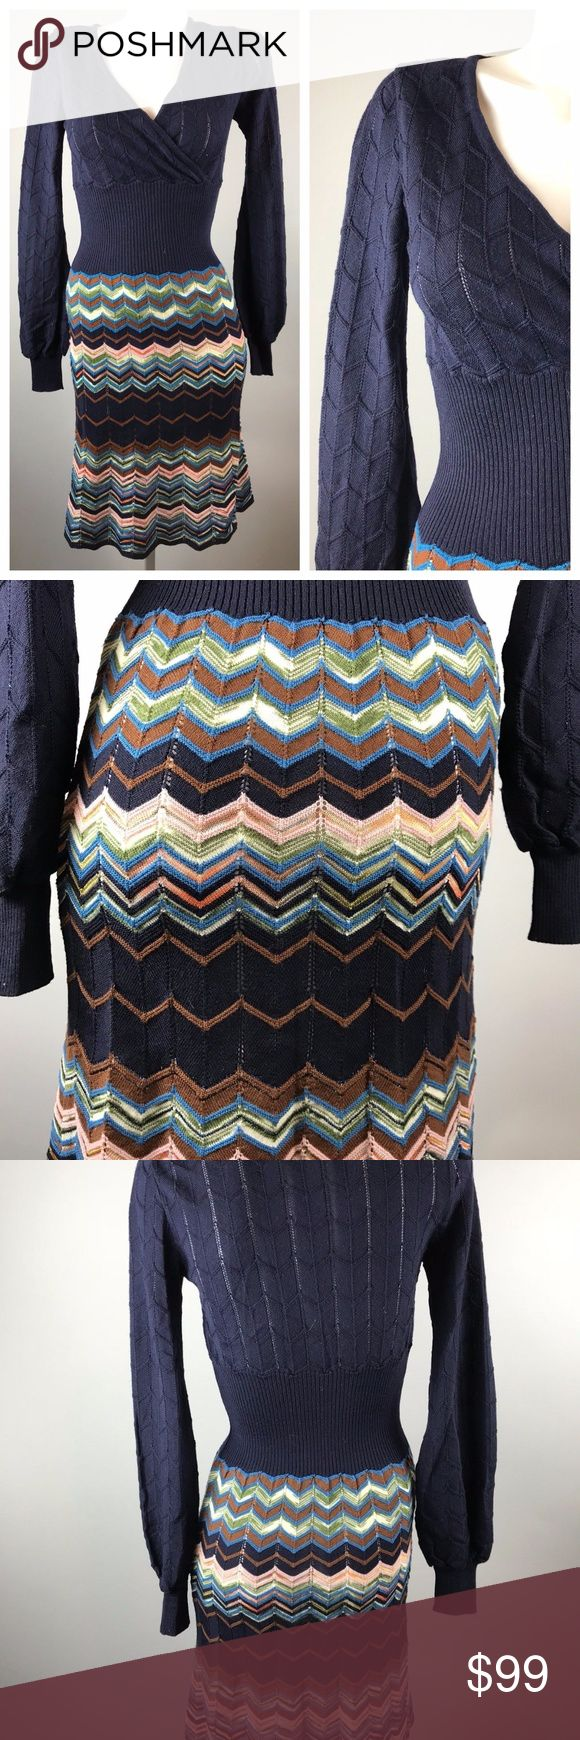 "Missoni Knit Dress Navy Chevron Dress Long Sleeve Missoni Knit Dress Navy Chevron Dress Long Cuff Sleeves Wool Blend Size 2   Tagged size 2 but please see measurements to ensure a proper fit. Measured flat unstretched. Armpit to armpit  18.5""  Waist 12""  Length  42""  Sleeve 28""  Please see photos. Ask any questions before purchasing. Missoni Dresses Long Sleeve"